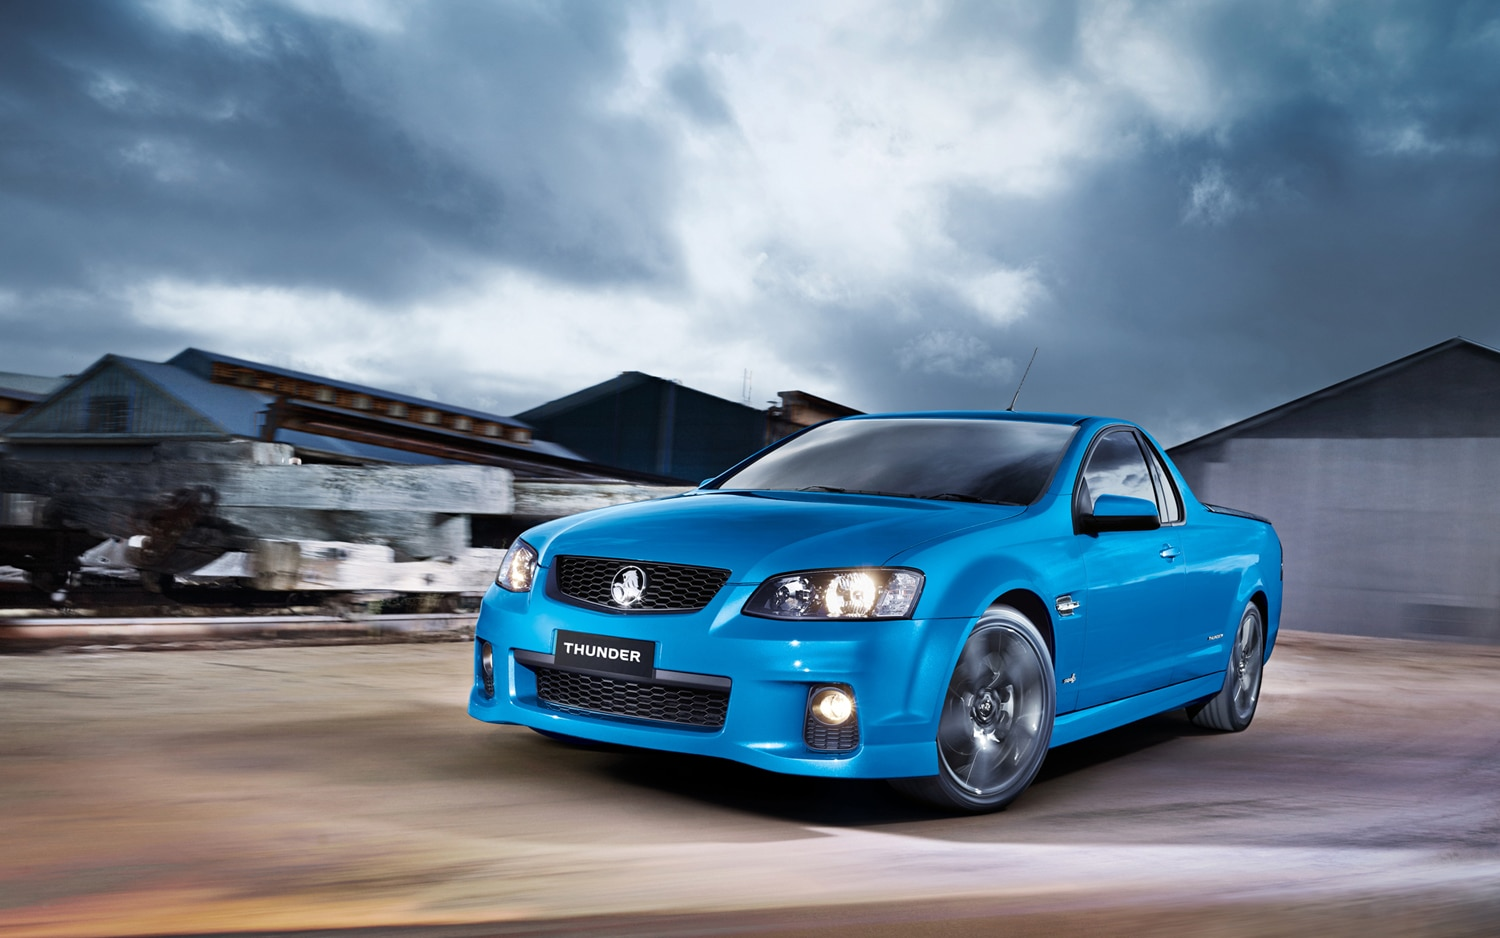 Thunder Down Under Holden Premieres Thunder Ute Special Edition